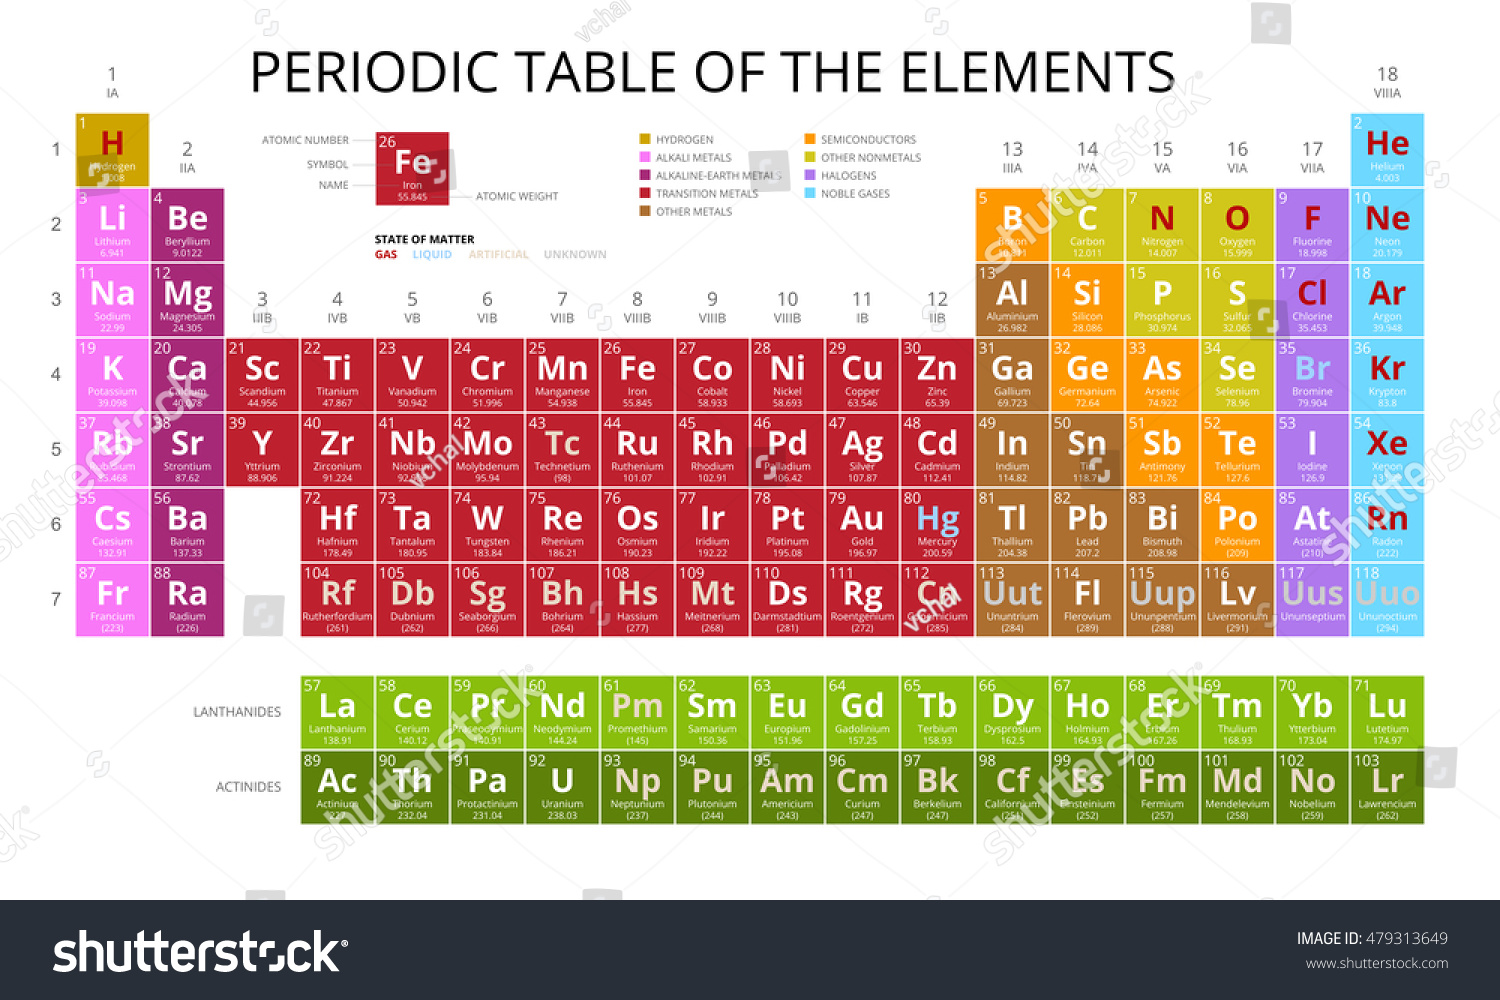 Mendeleev periodic table elements vector on stock vector 479313649 mendeleev periodic table of the elements vector on white background symbol atomic number biocorpaavc Images